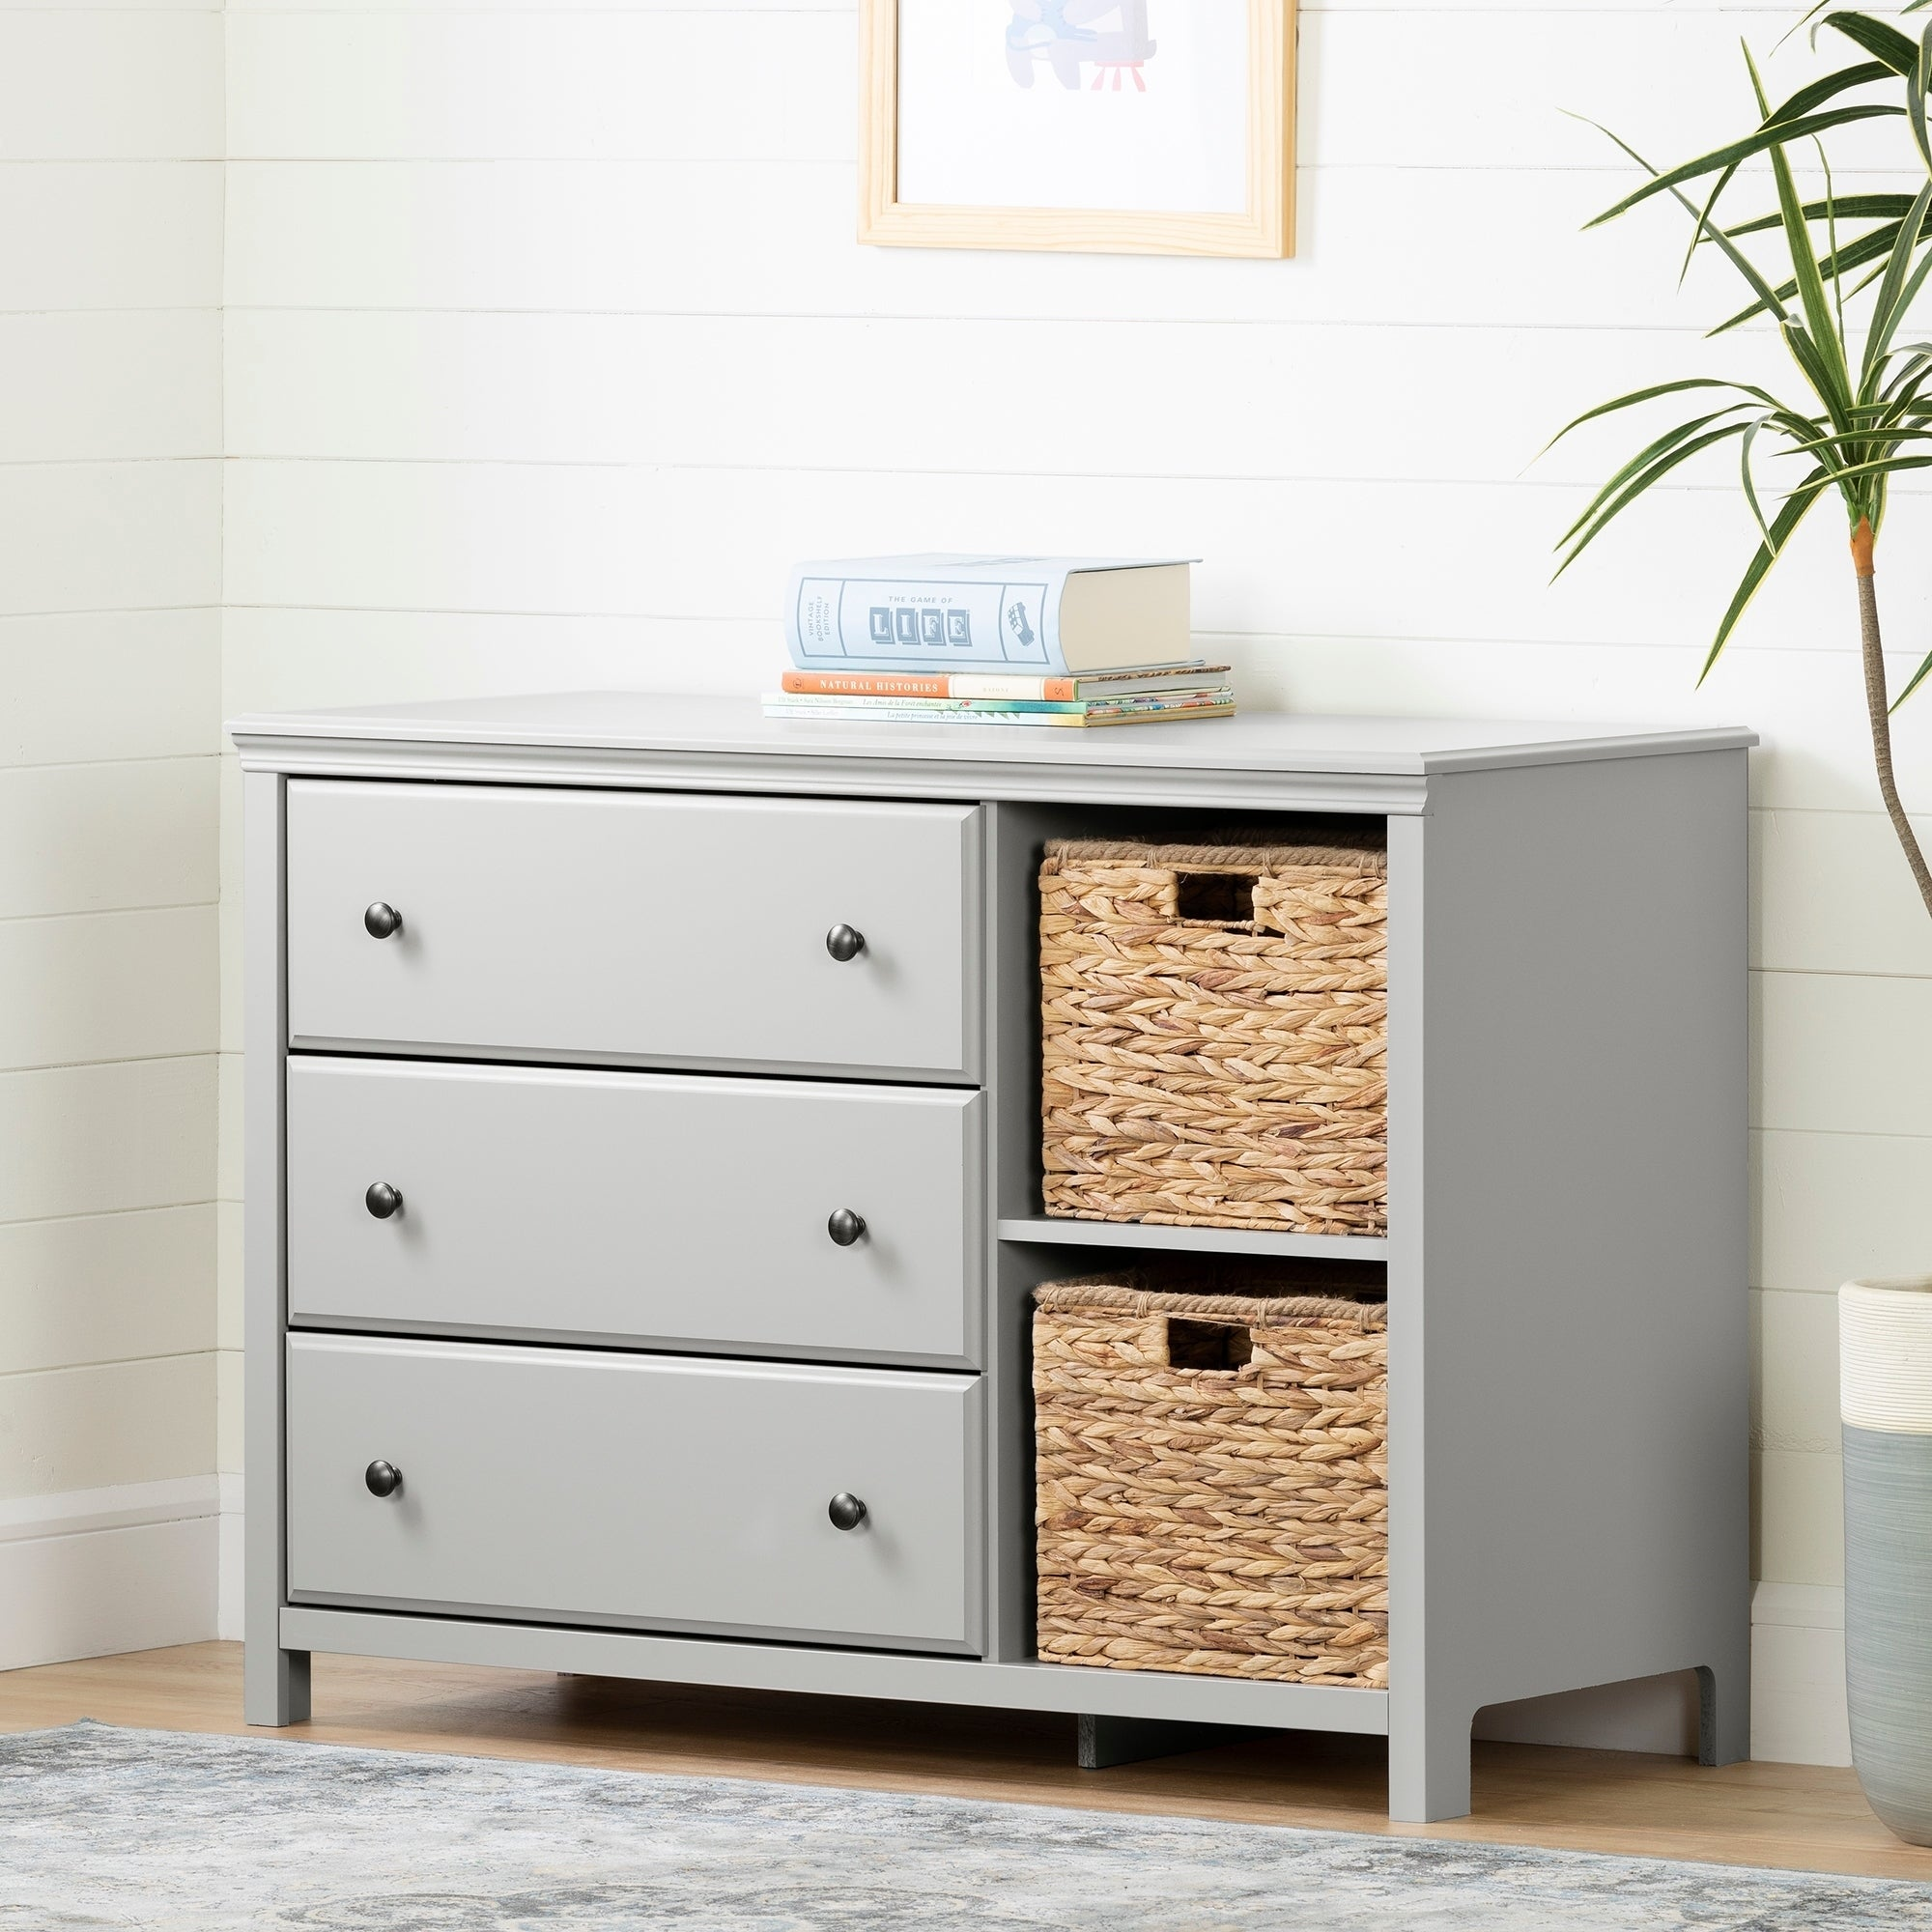 South S Cotton Candy 3 Drawer Dresser With Baskets